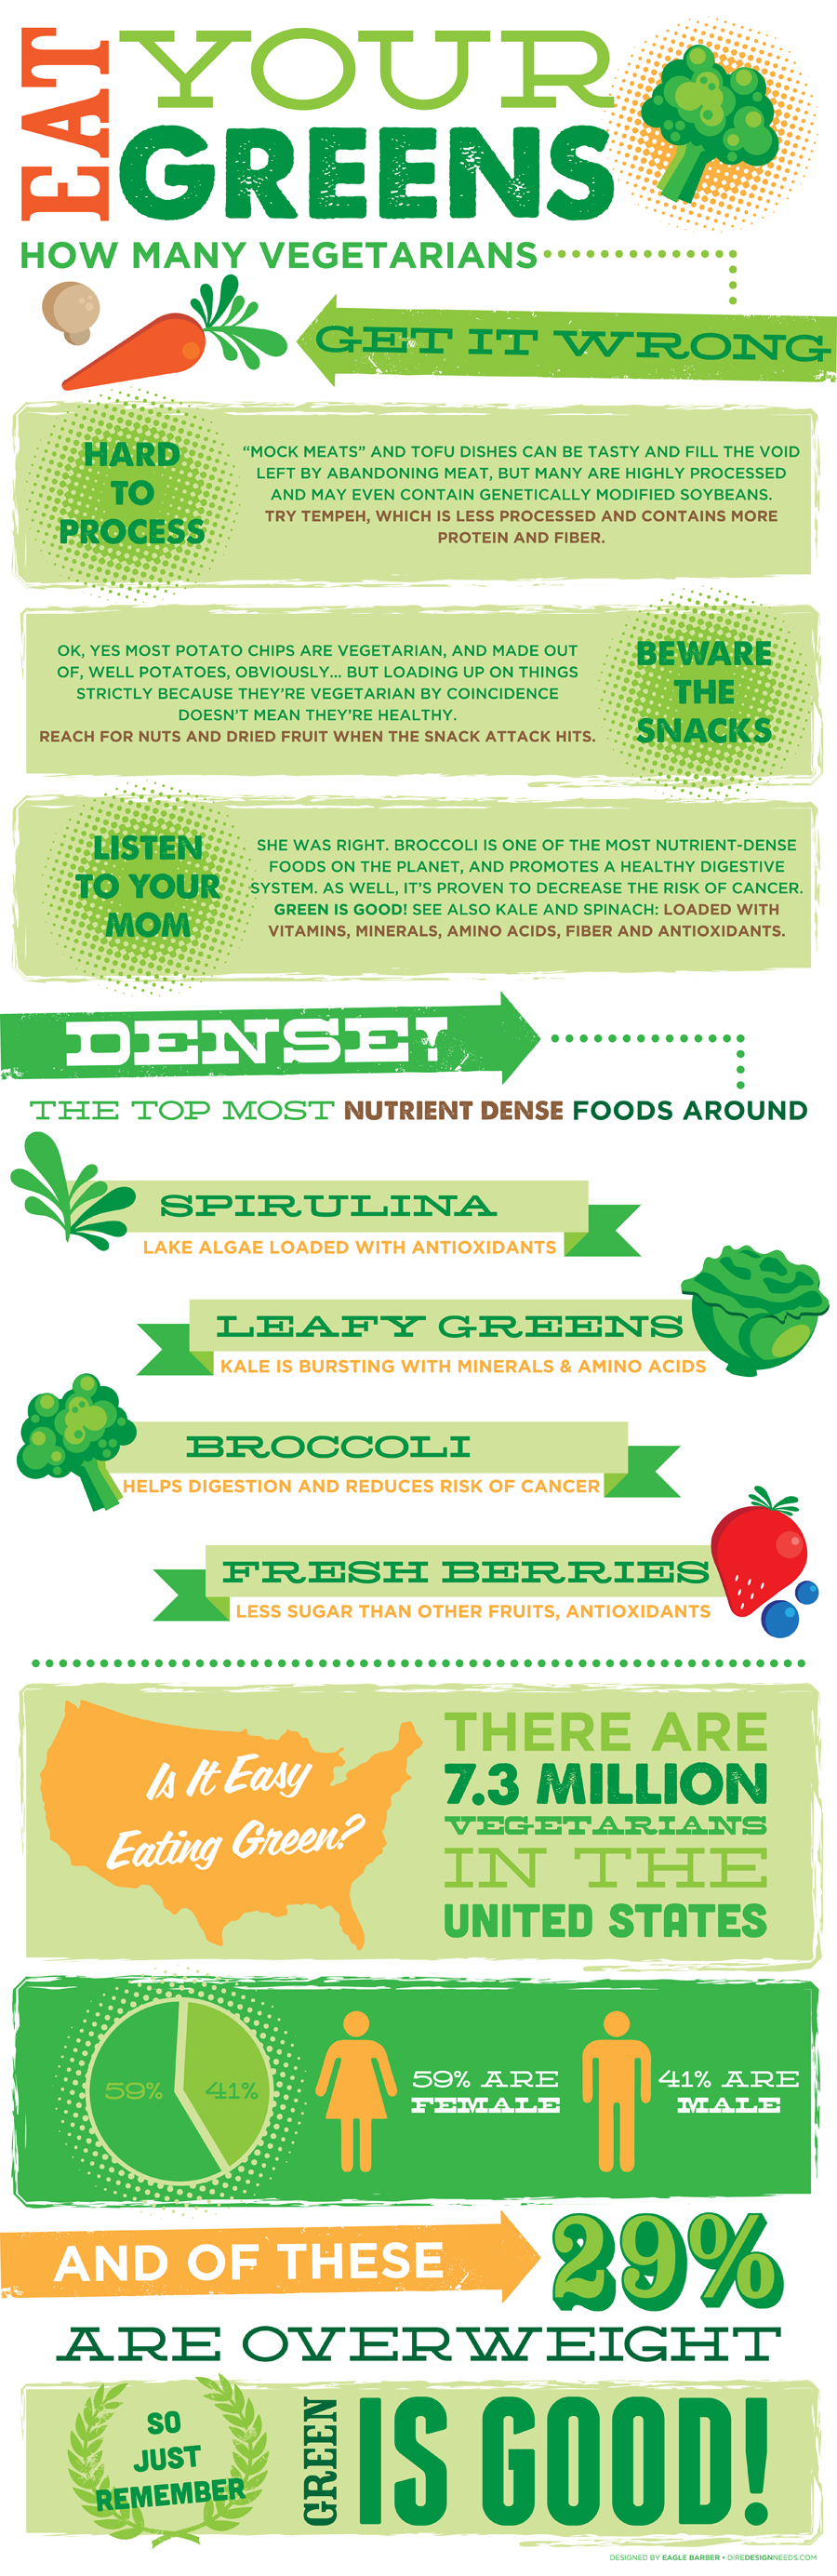 This infographic has some great insight into the healthiest foods vegetarians can seek out.